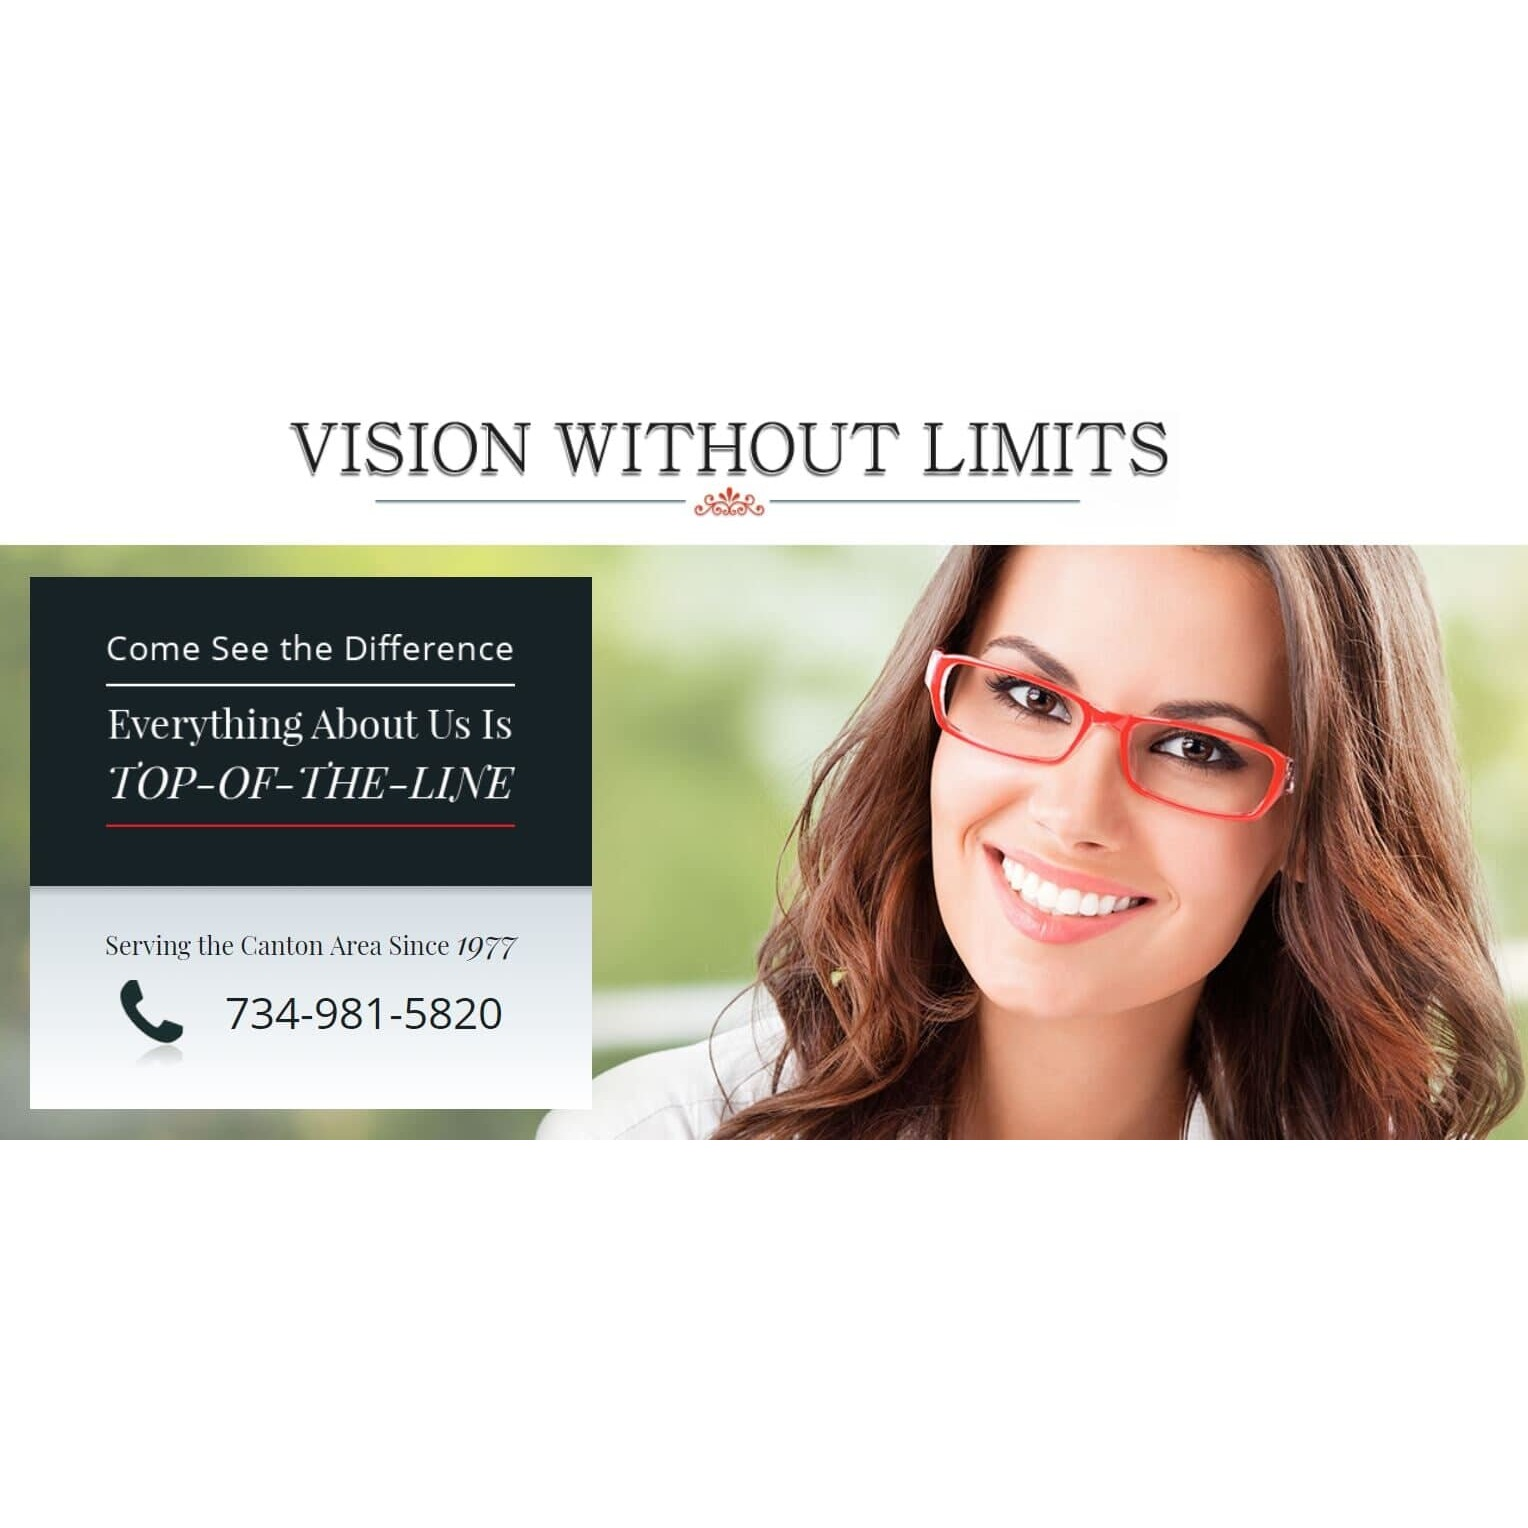 Vision Without Limits